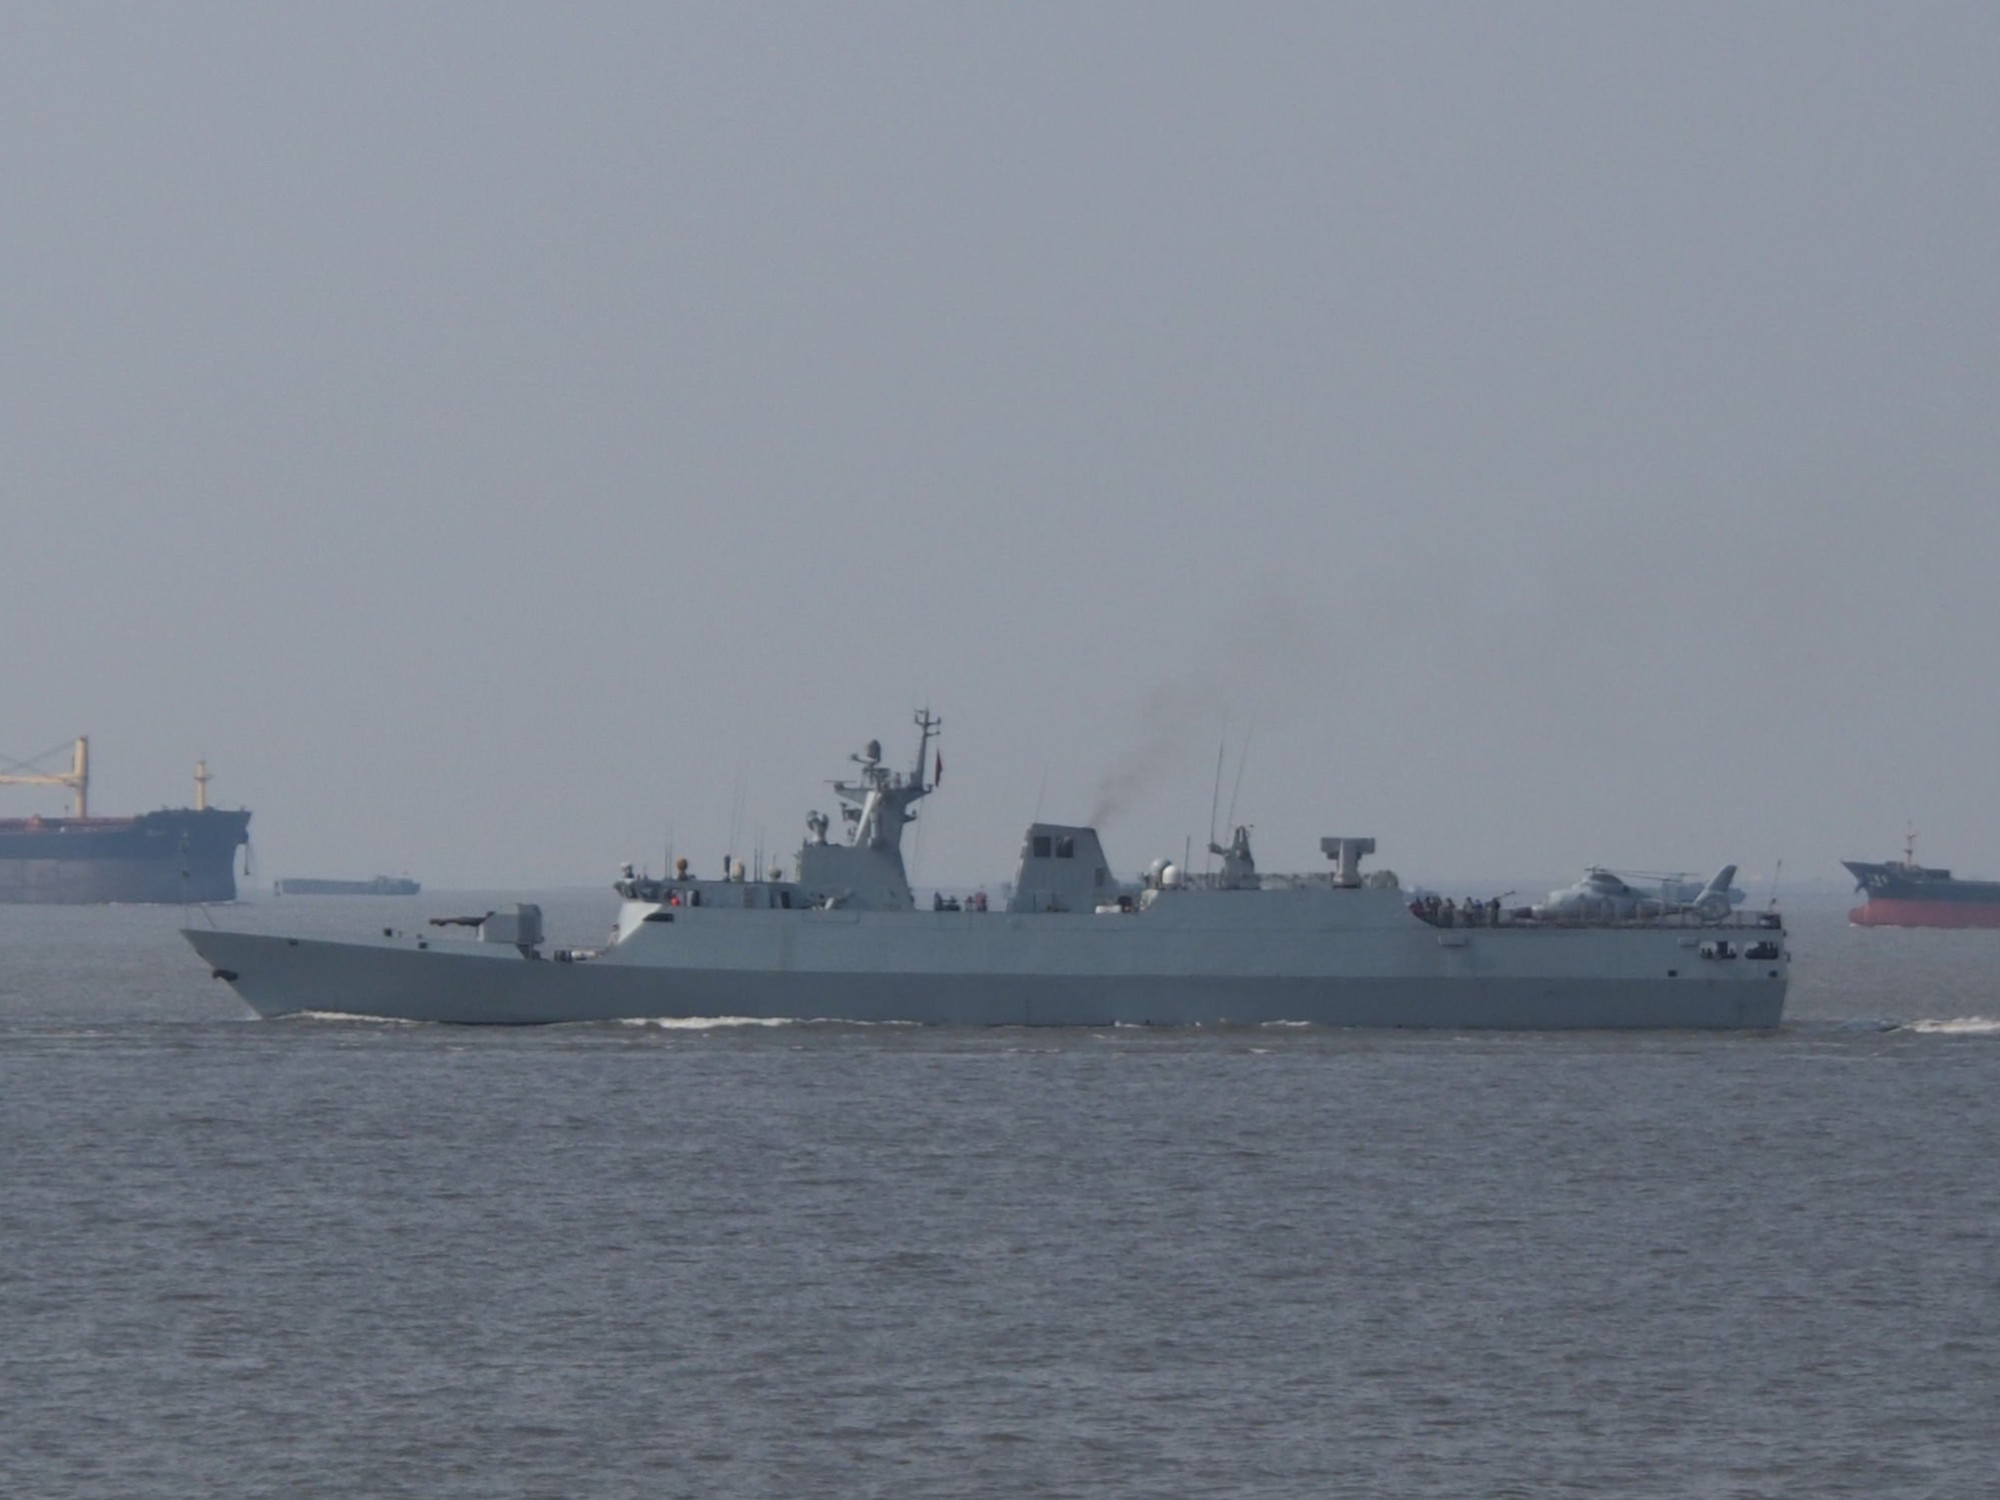 The Royal Malaysian Navy has announced the procurement of up to four vessels from China for its Littoral Mission Ships programme. The Type 056 corvettes virtually matches the requirements of the RMN (image by Wikipedia)